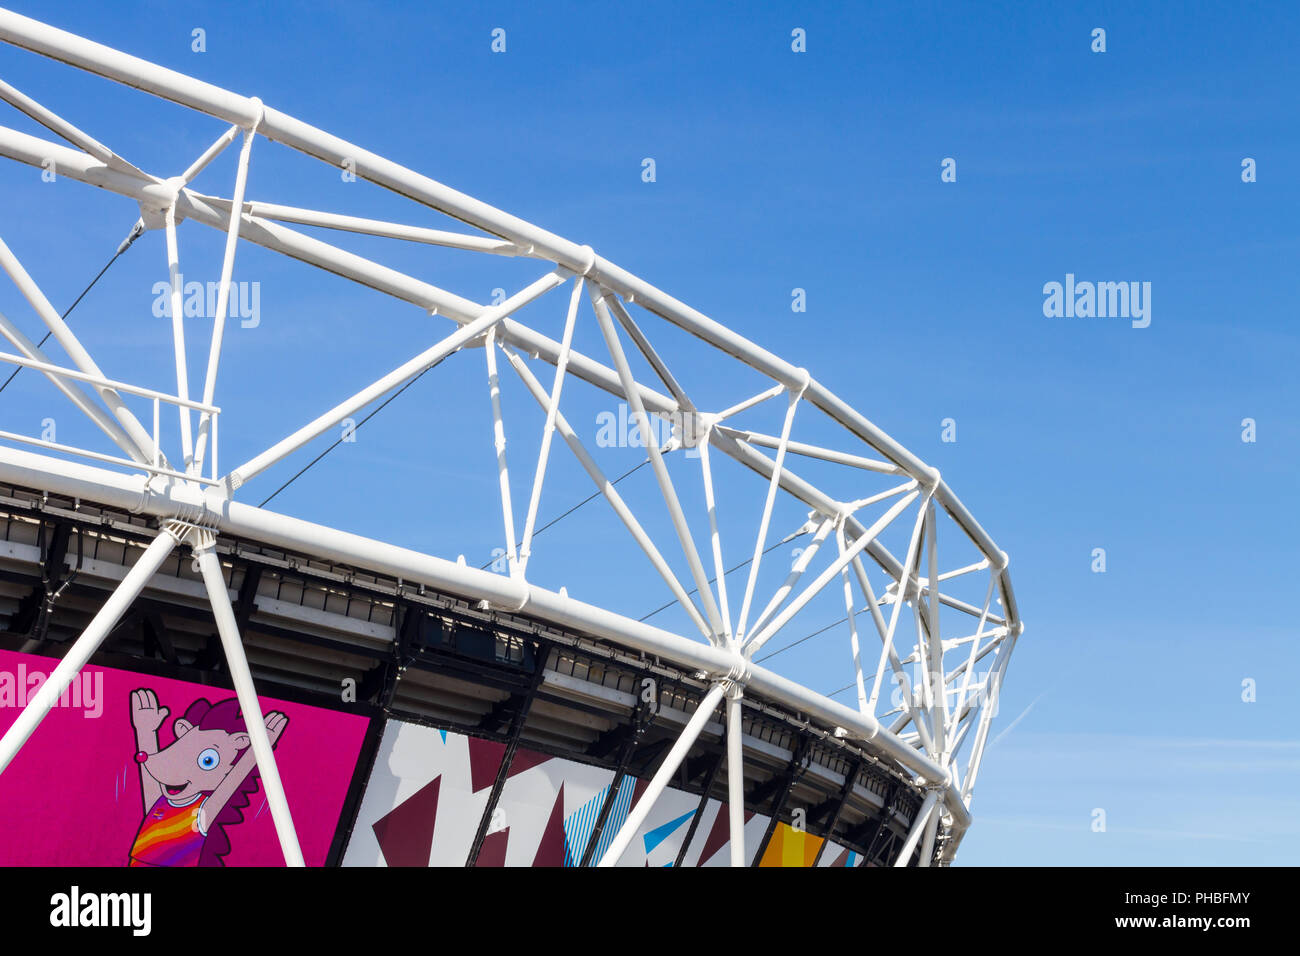 The Olympic Stadium in Queen Elizabeth Olympic Park, London, England.  The stadium is now home to West Ham United Football Club. - Stock Image